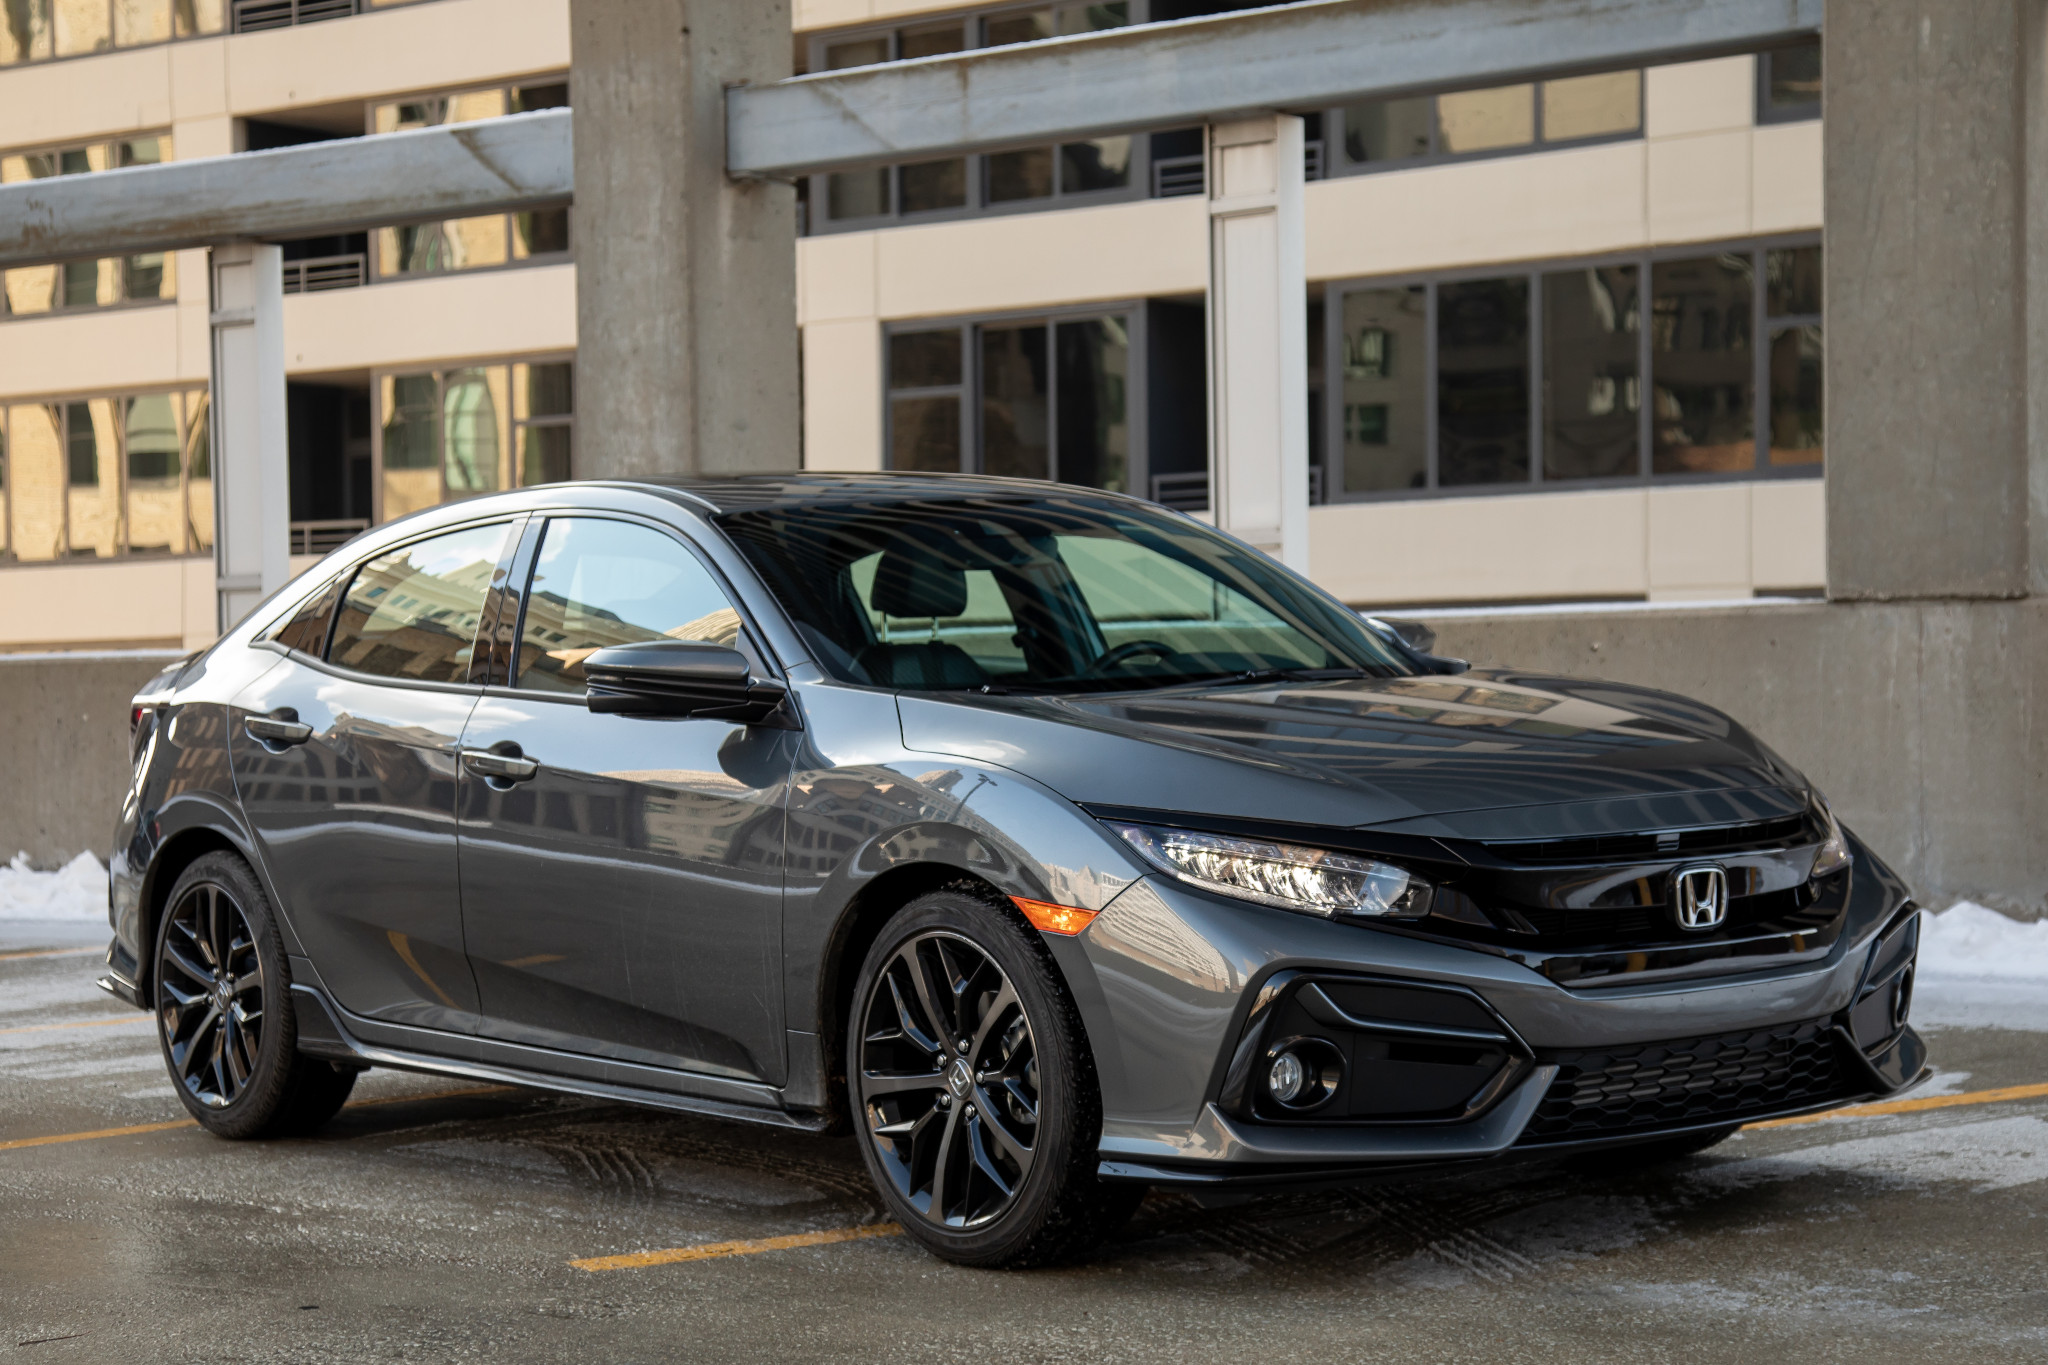 2020 Honda Civic Hatchback: 8 Things We Like (and 2 Not So Much)